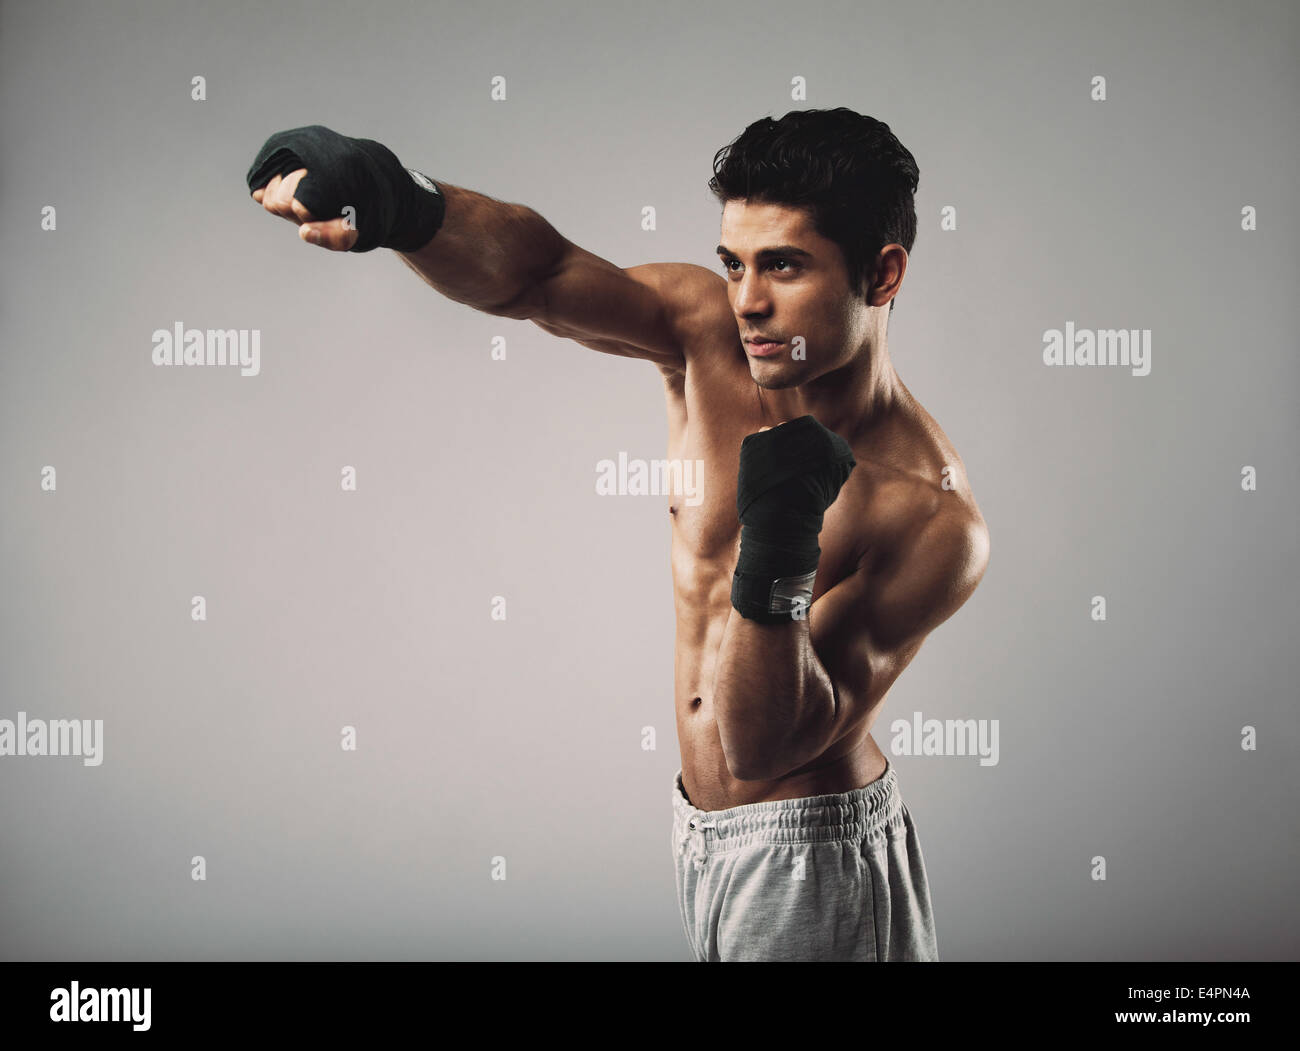 Fit young male model practicing shadowboxing.  Masculine young male athlete working out on grey background. - Stock Image